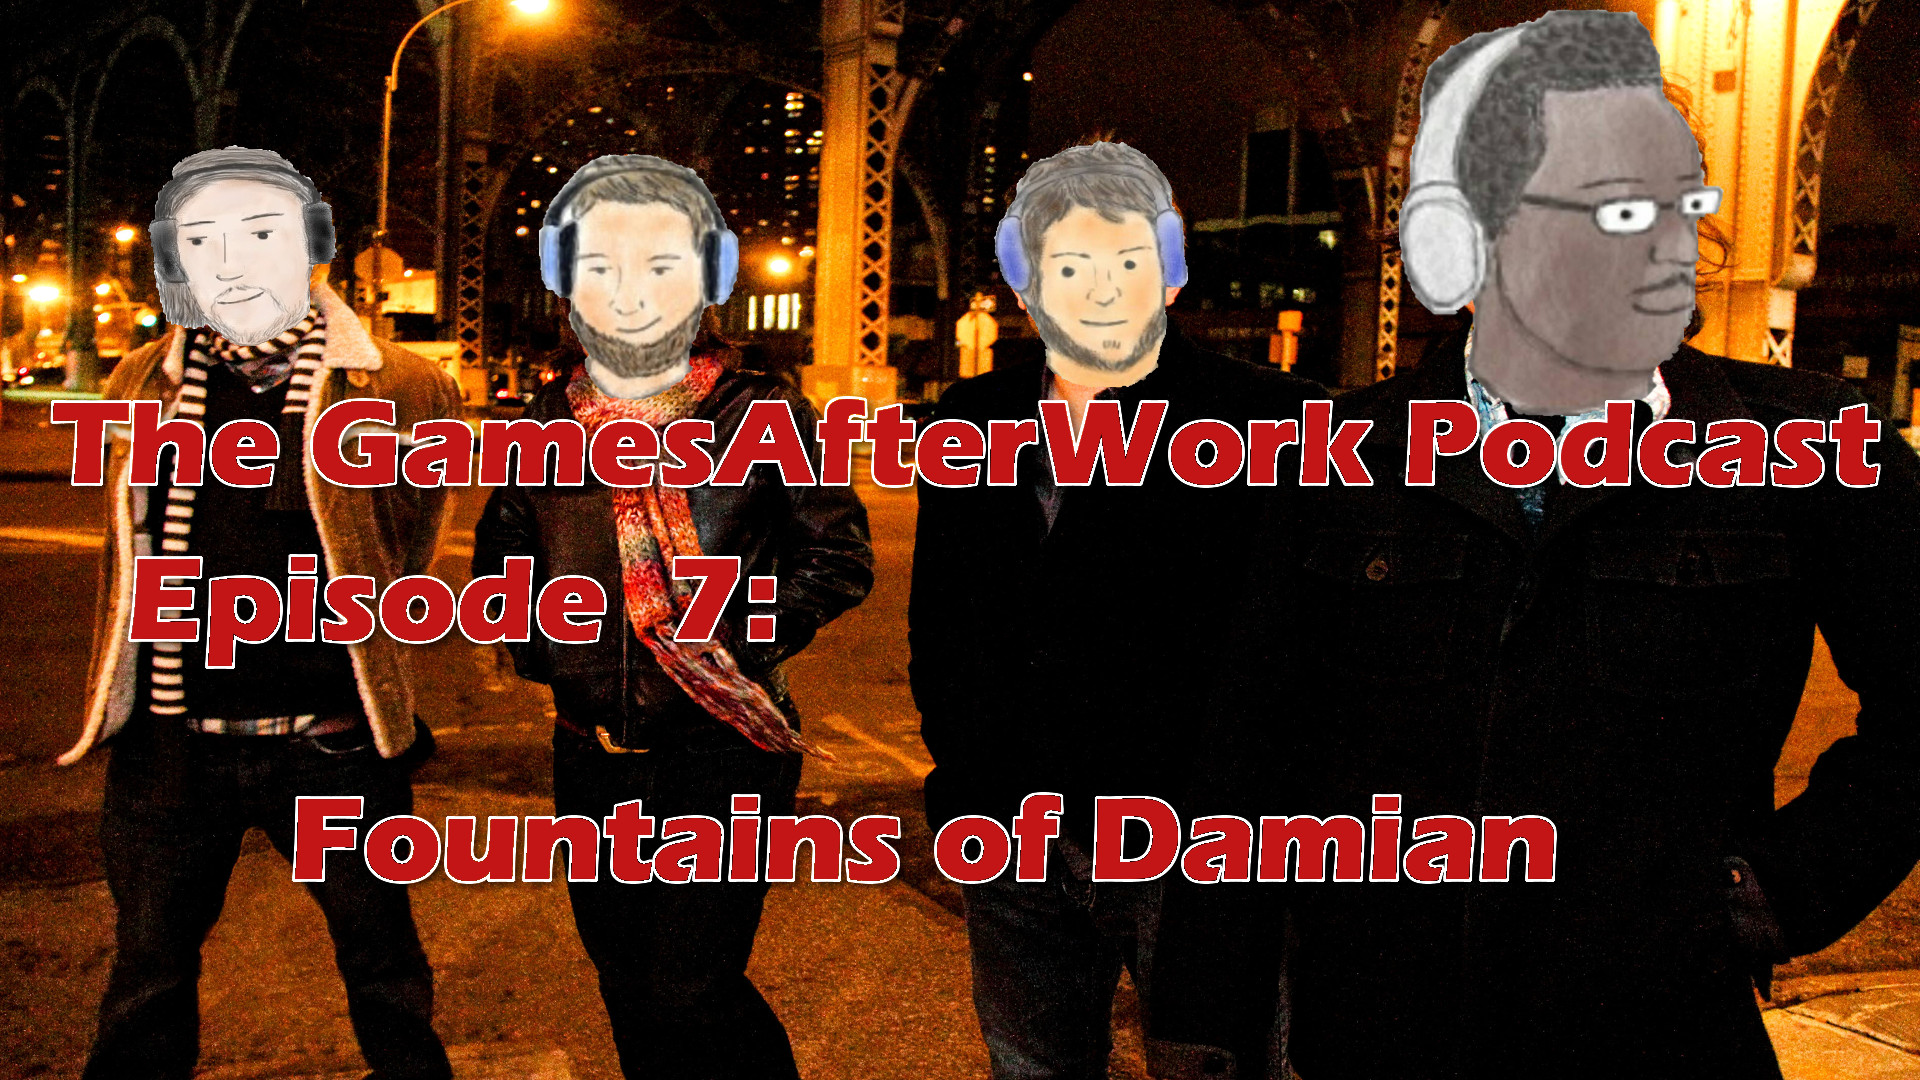 The GamesAfterWork Podcast Episode 07: Fountains of Damian